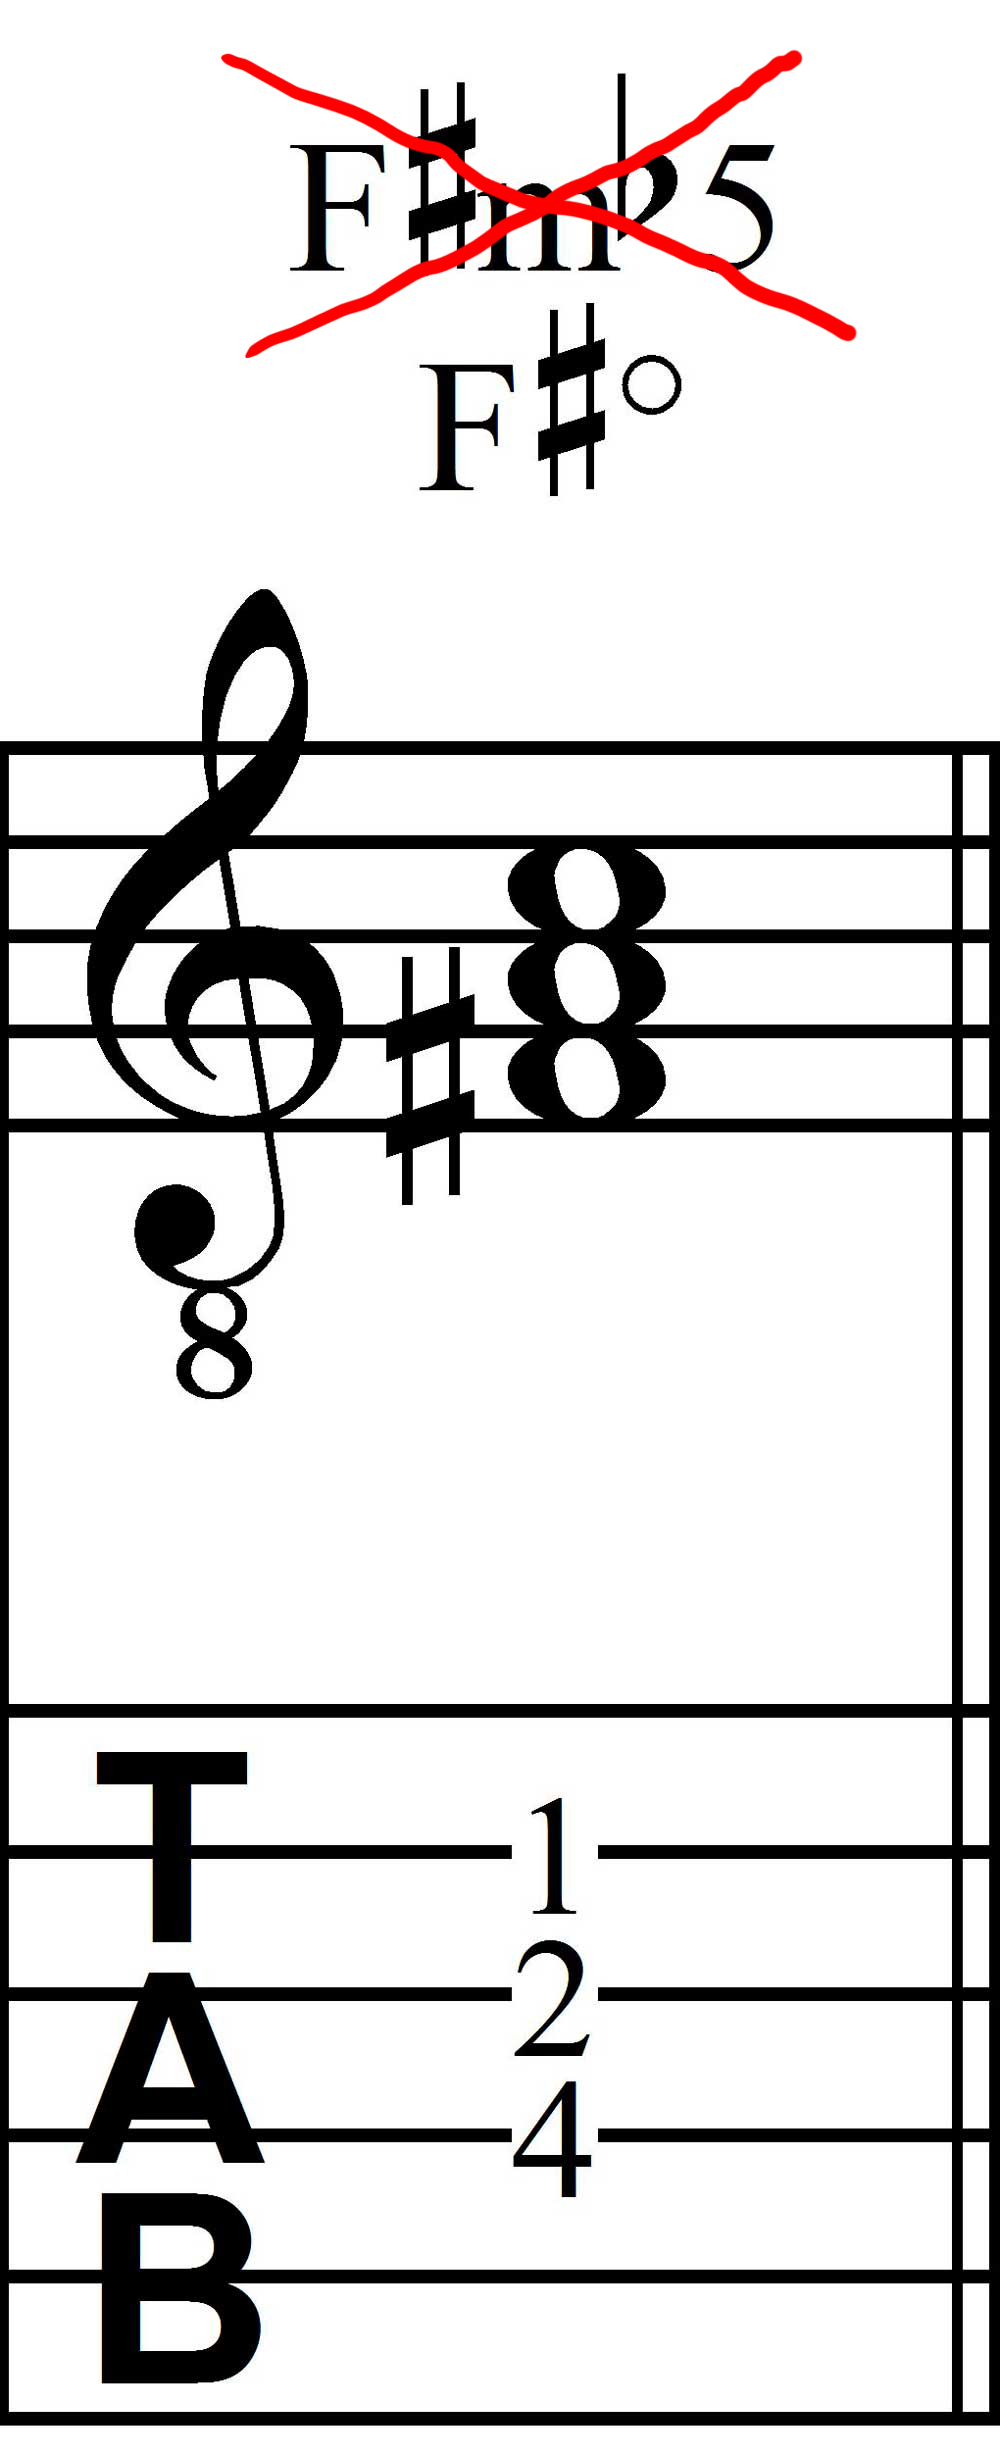 F# diminished triad (F# minor flat-five)